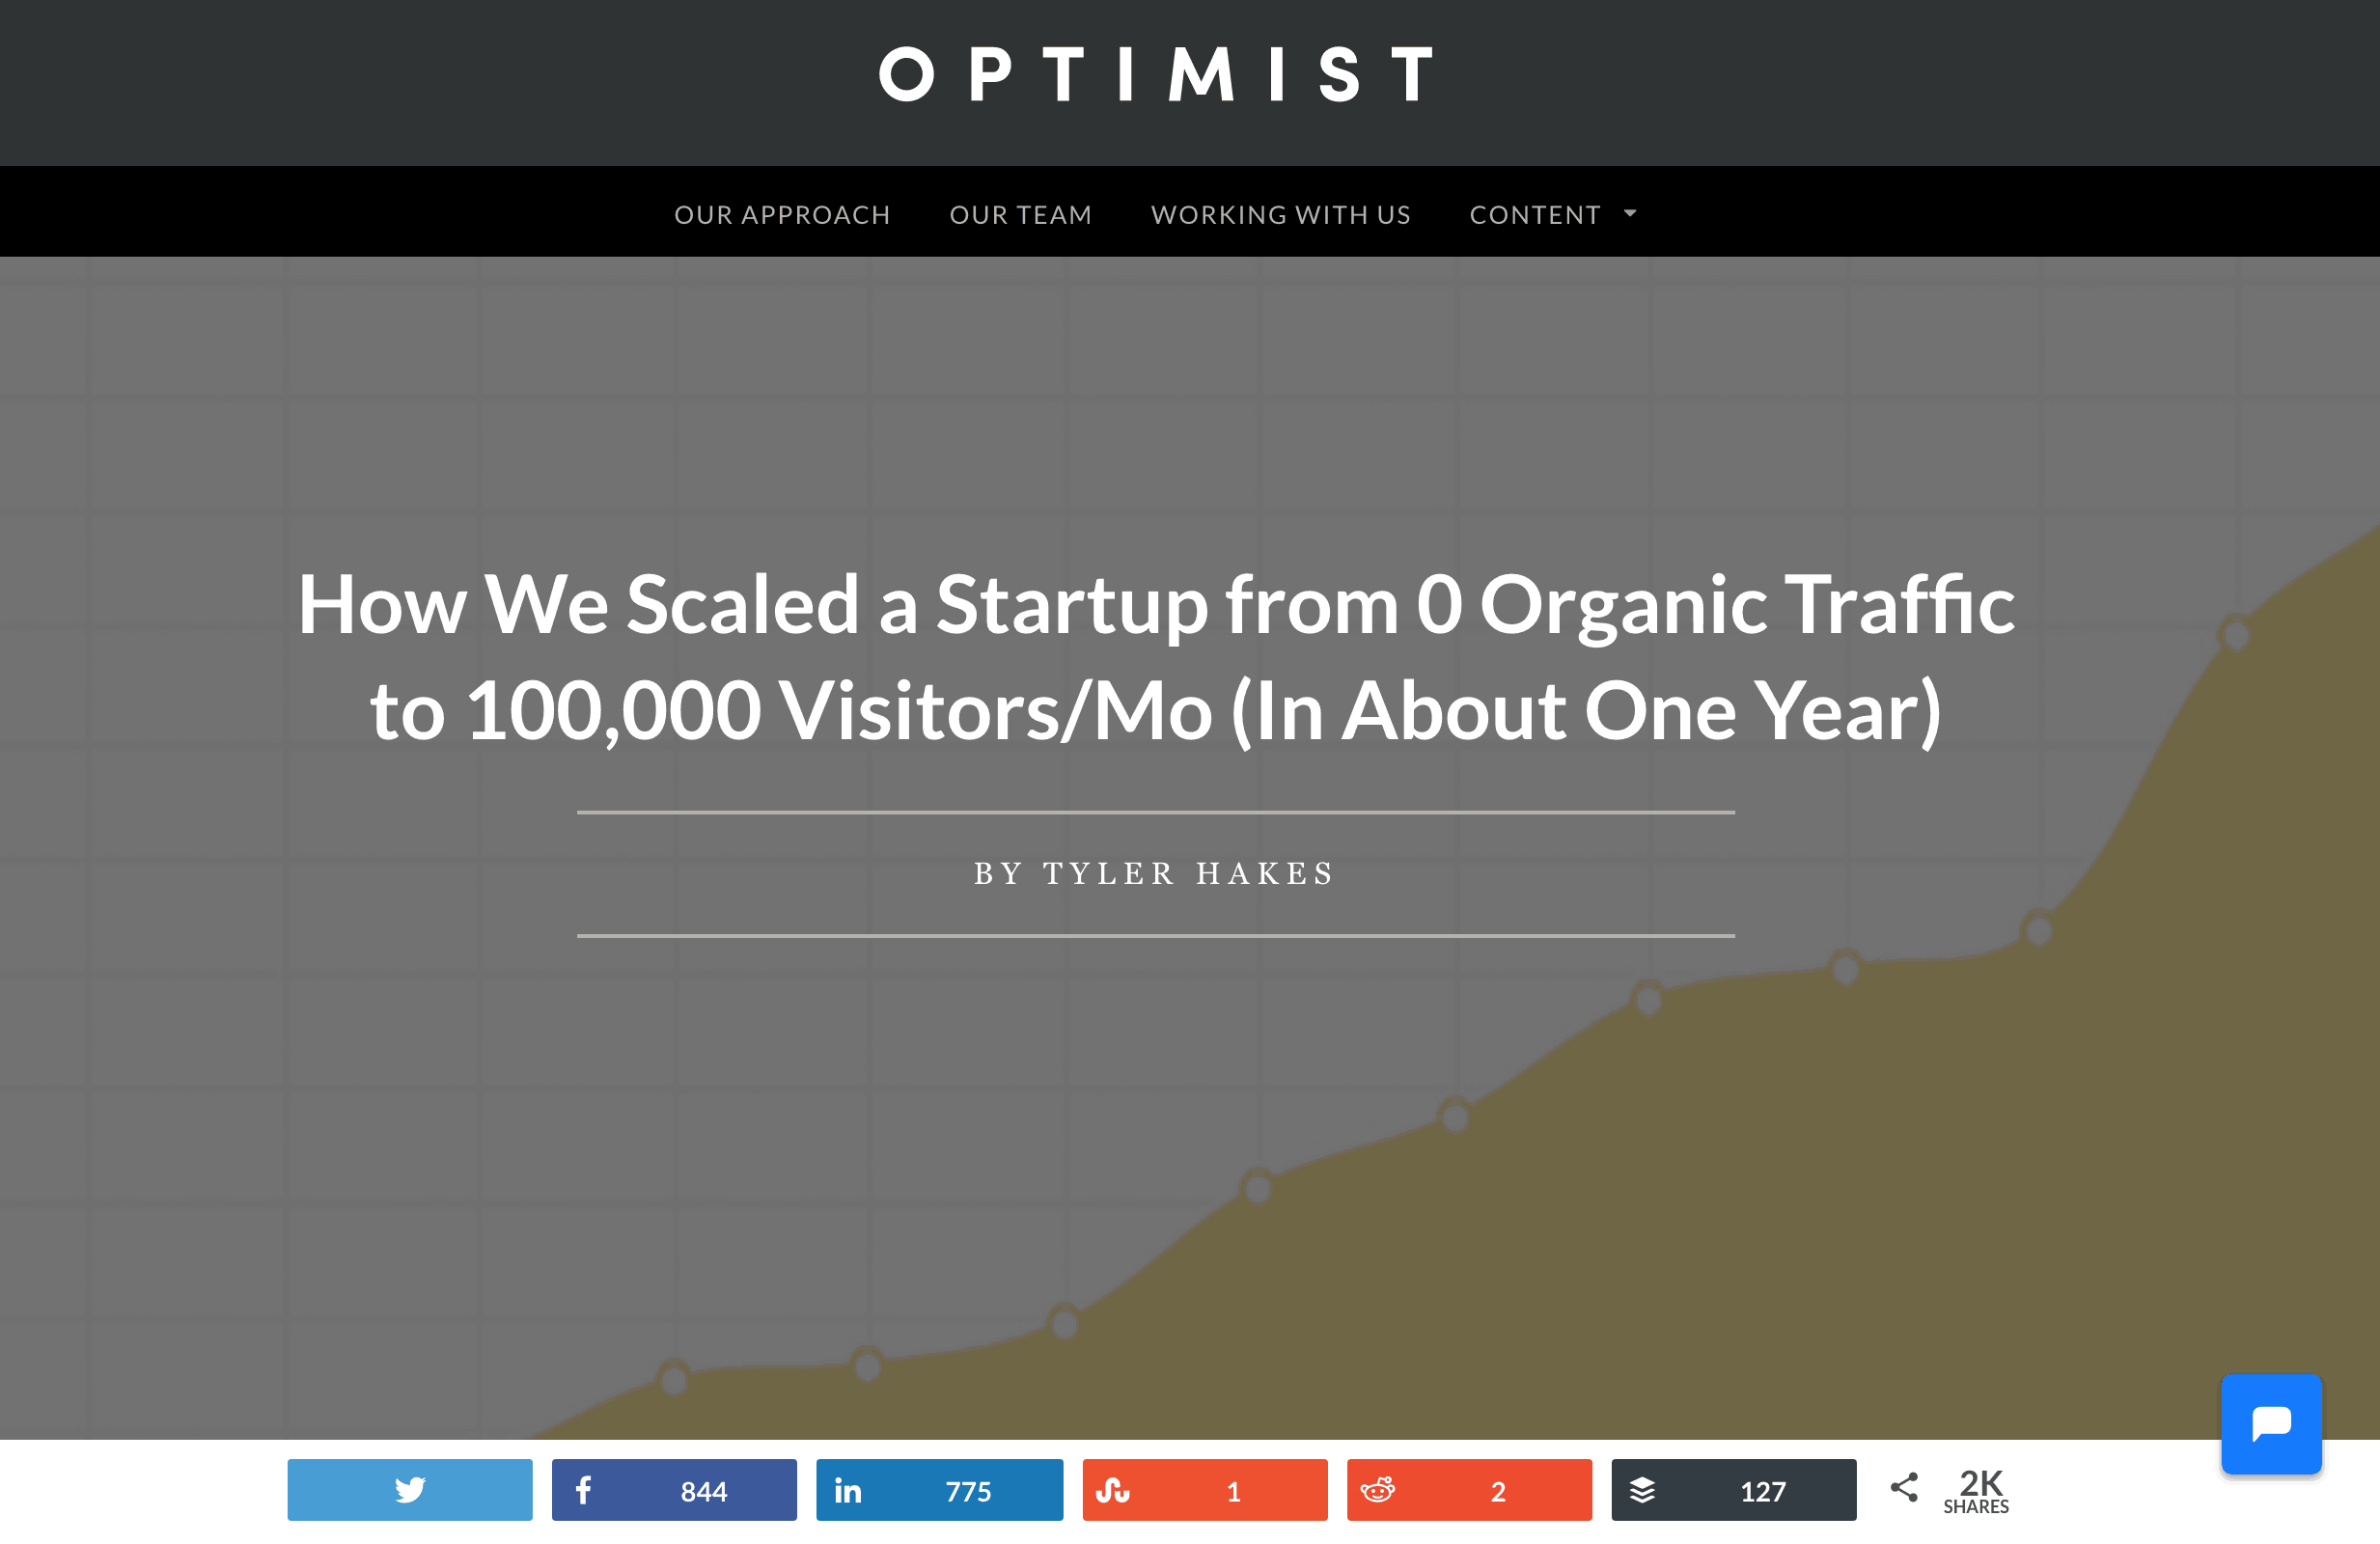 Headline showcasing the big-number outcome of our case study: 100,000 Visitors/Mo